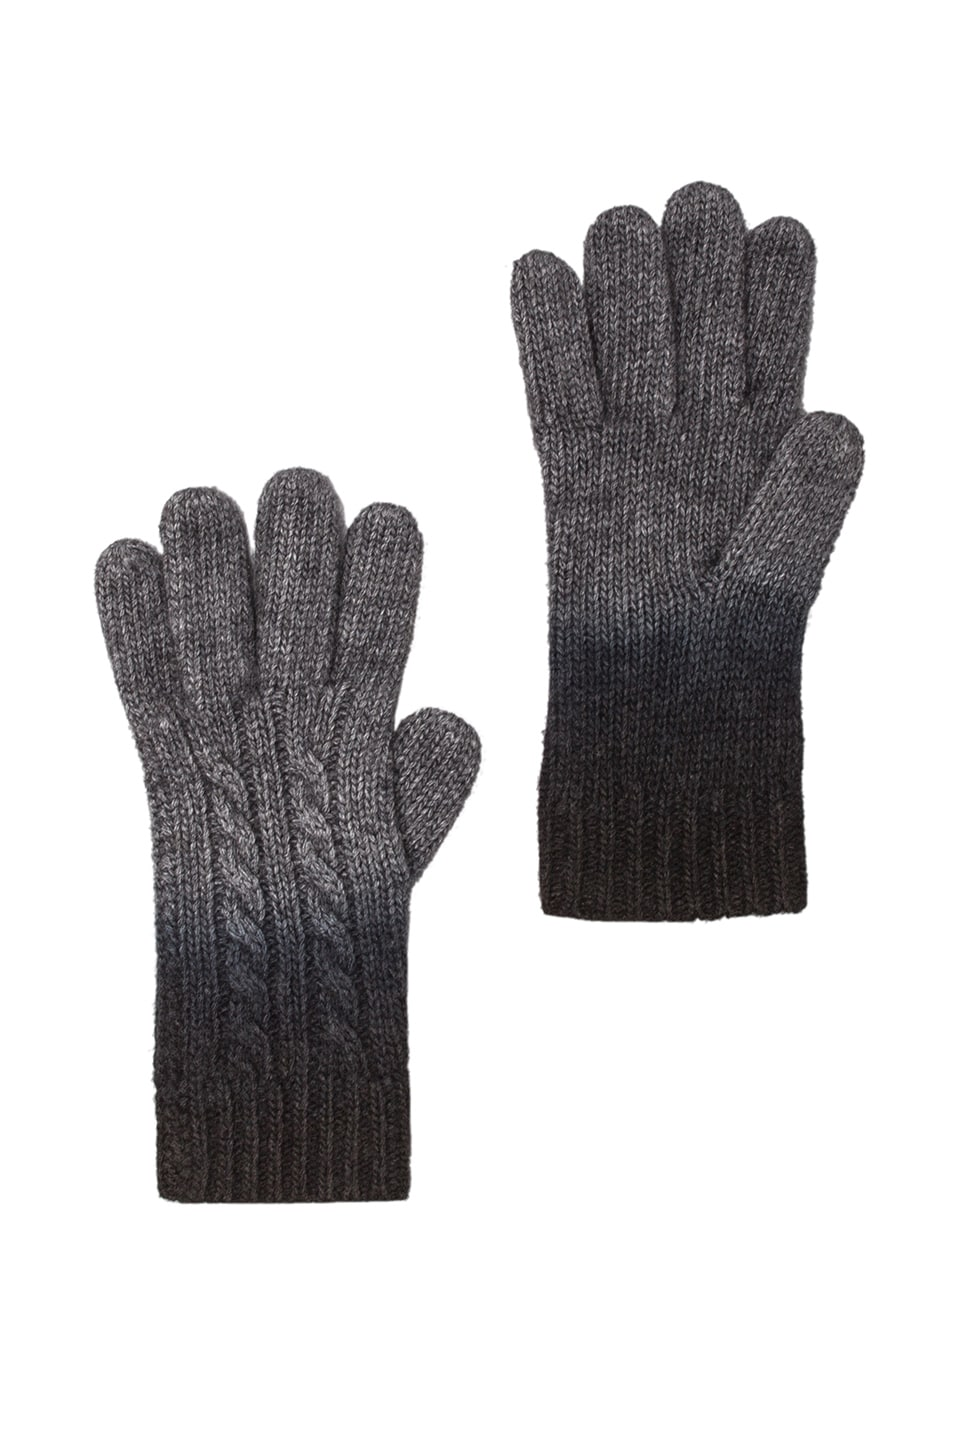 Autumn Cashmere Dip Dye Gloves in Flannel/Ebony